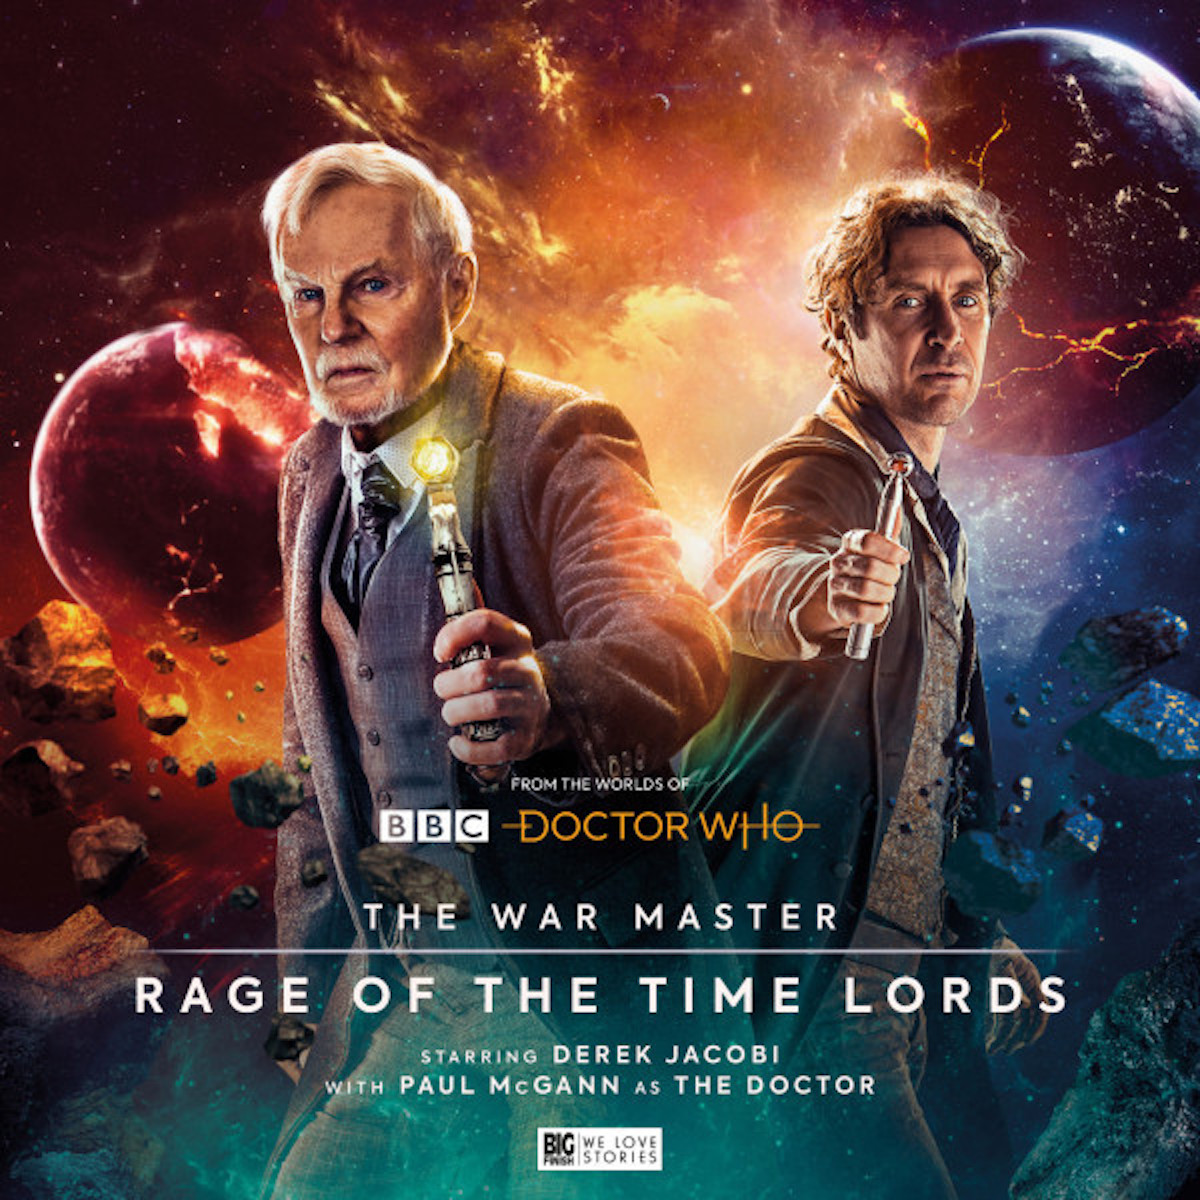 The War Master Rage of the Timelords